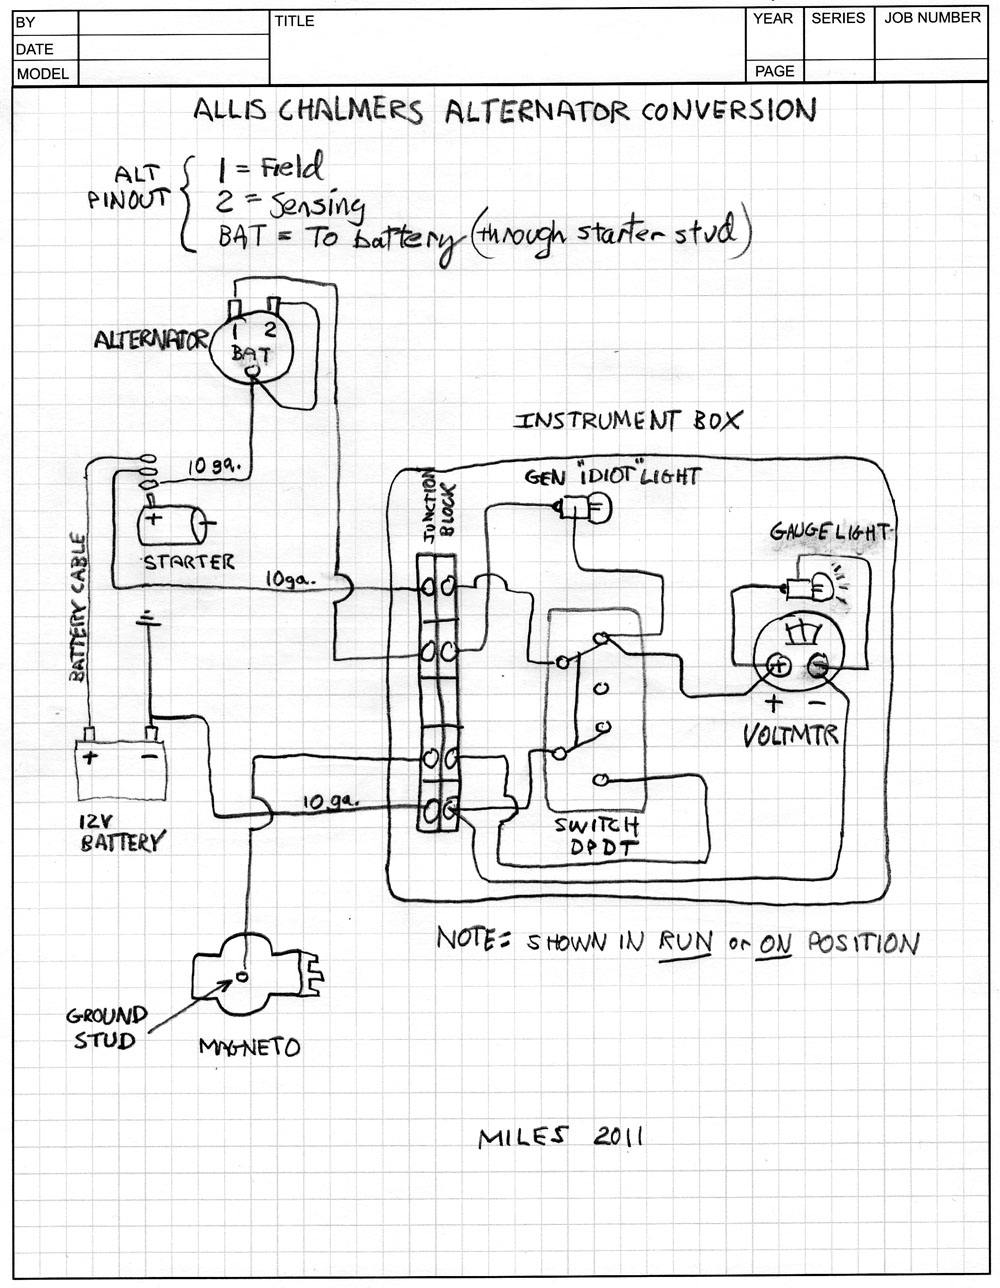 ACshematicjpg 12 volt conversion help! allischalmers forum allis chalmers ca 12 volt wiring diagram at readyjetset.co